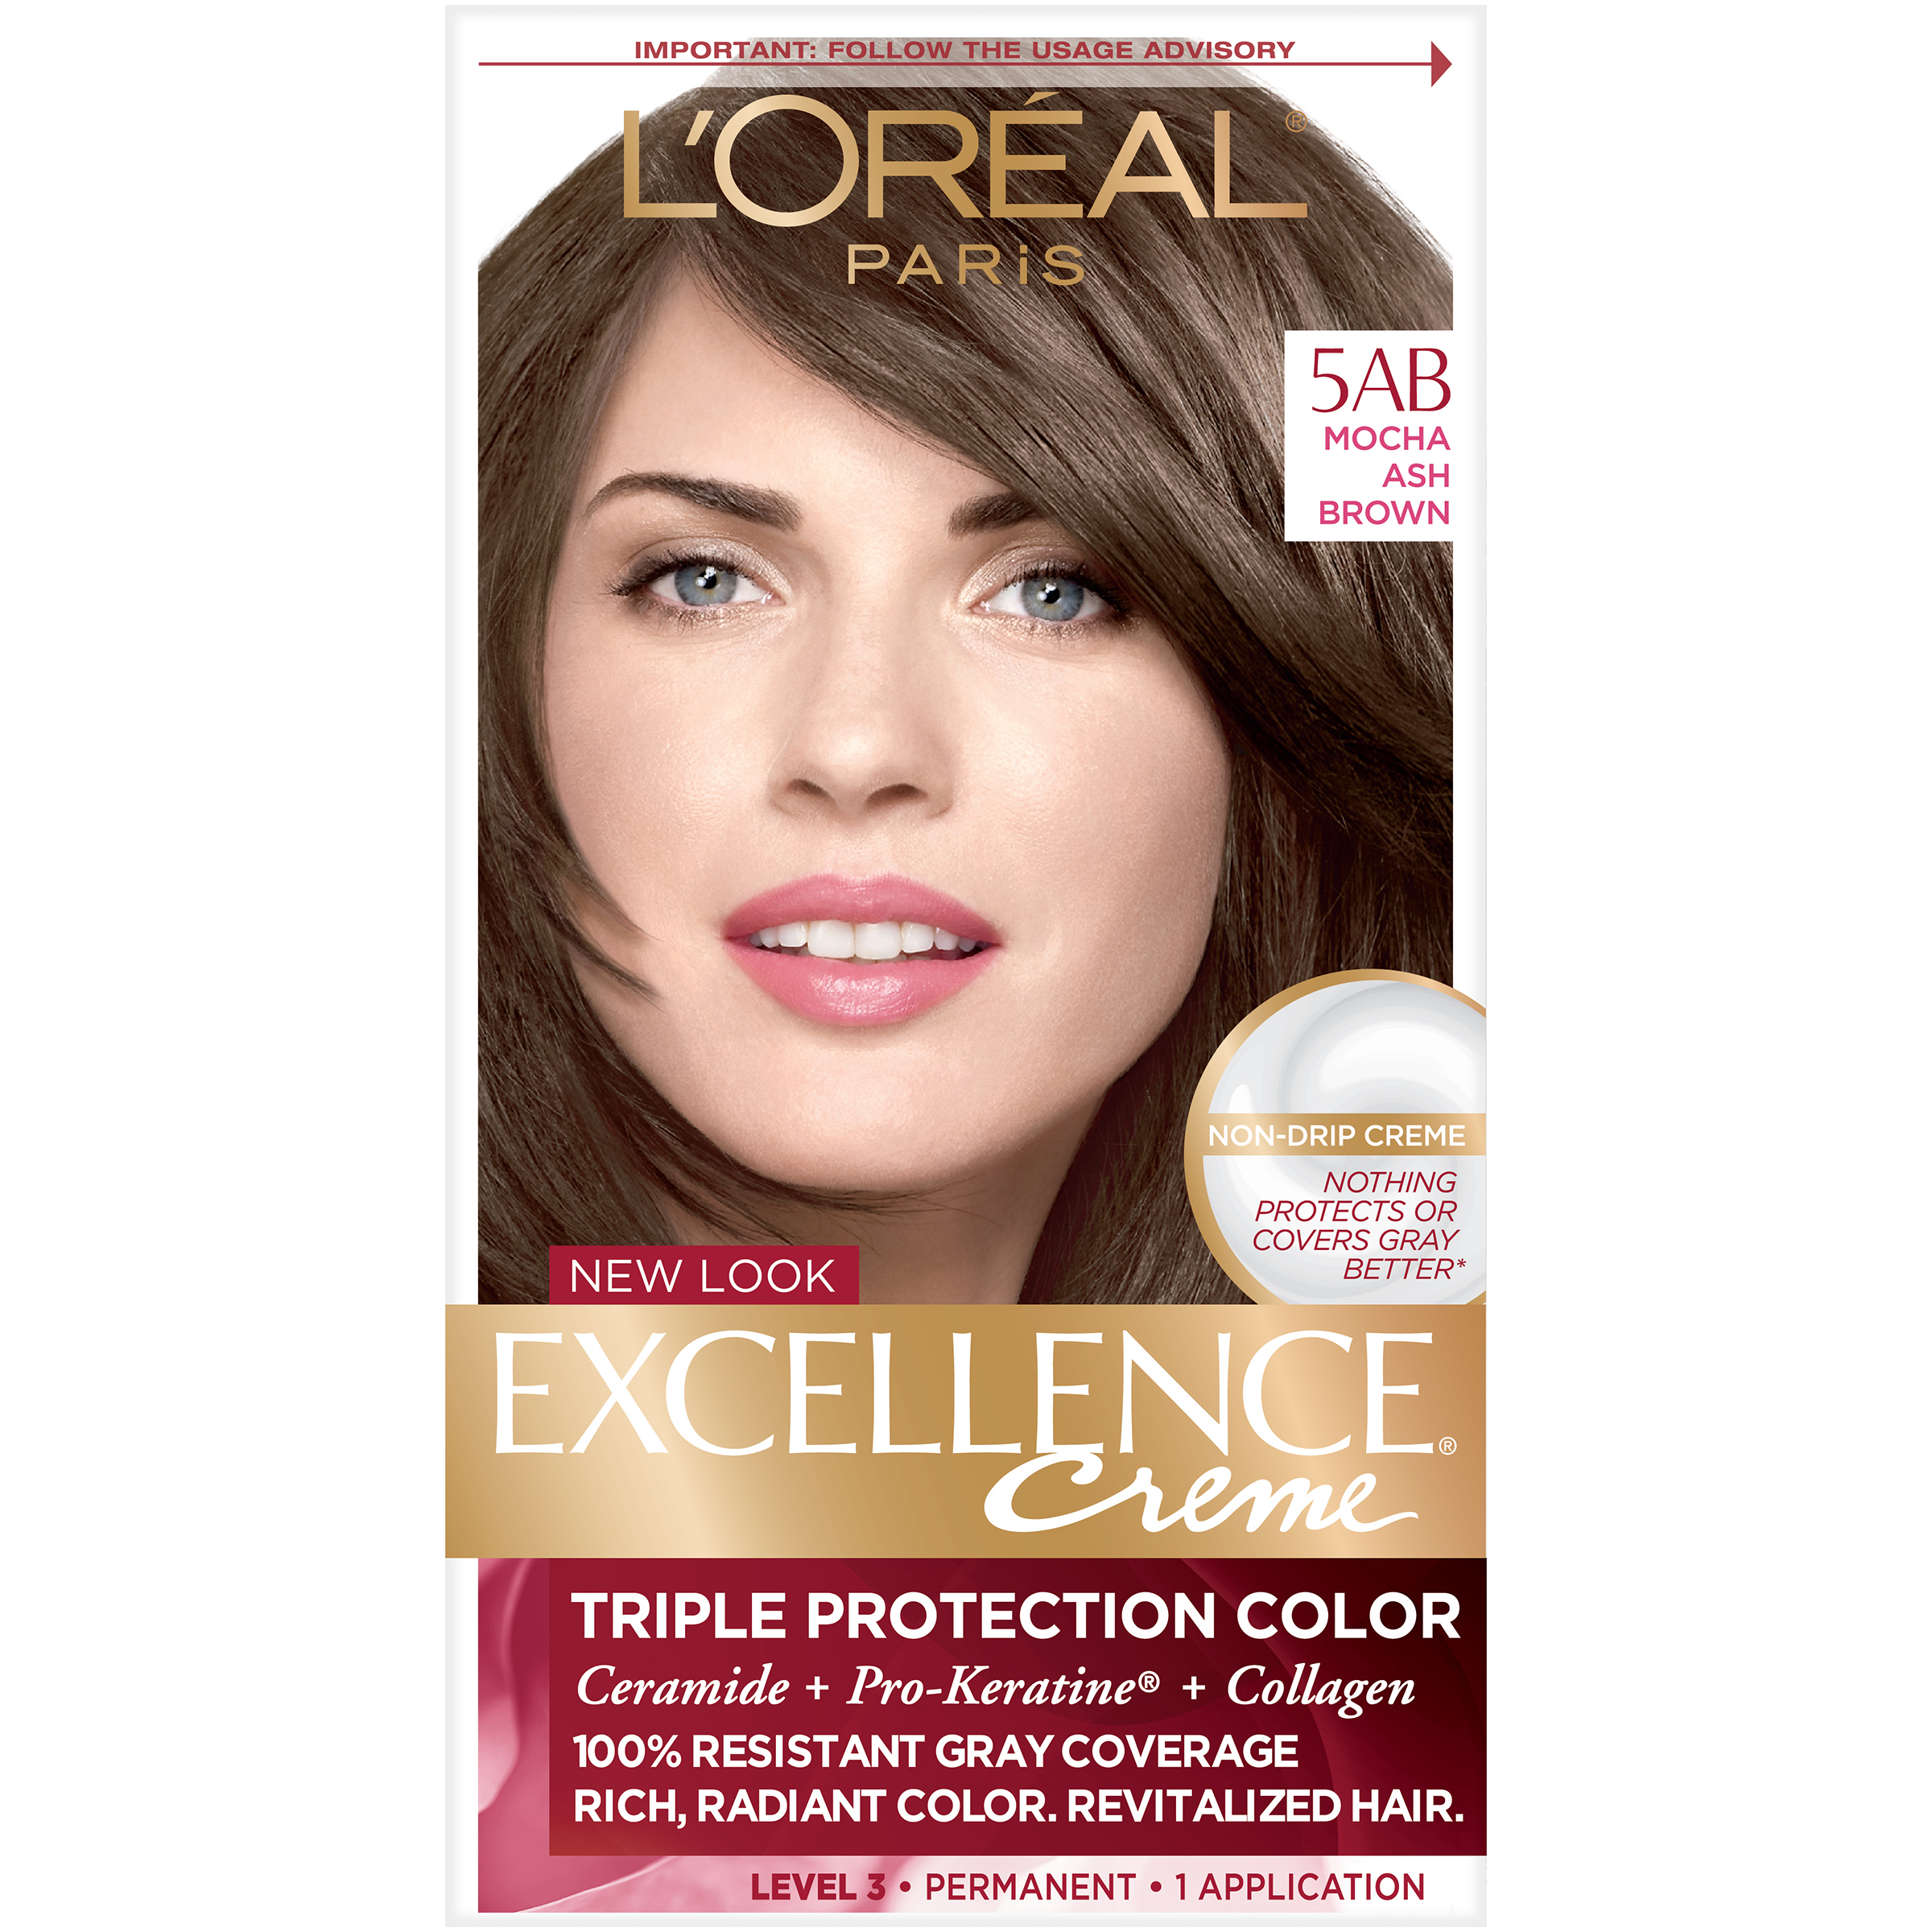 Loreal Excellence Triple Protection Hair Color Creme 5ab Mocha Ash